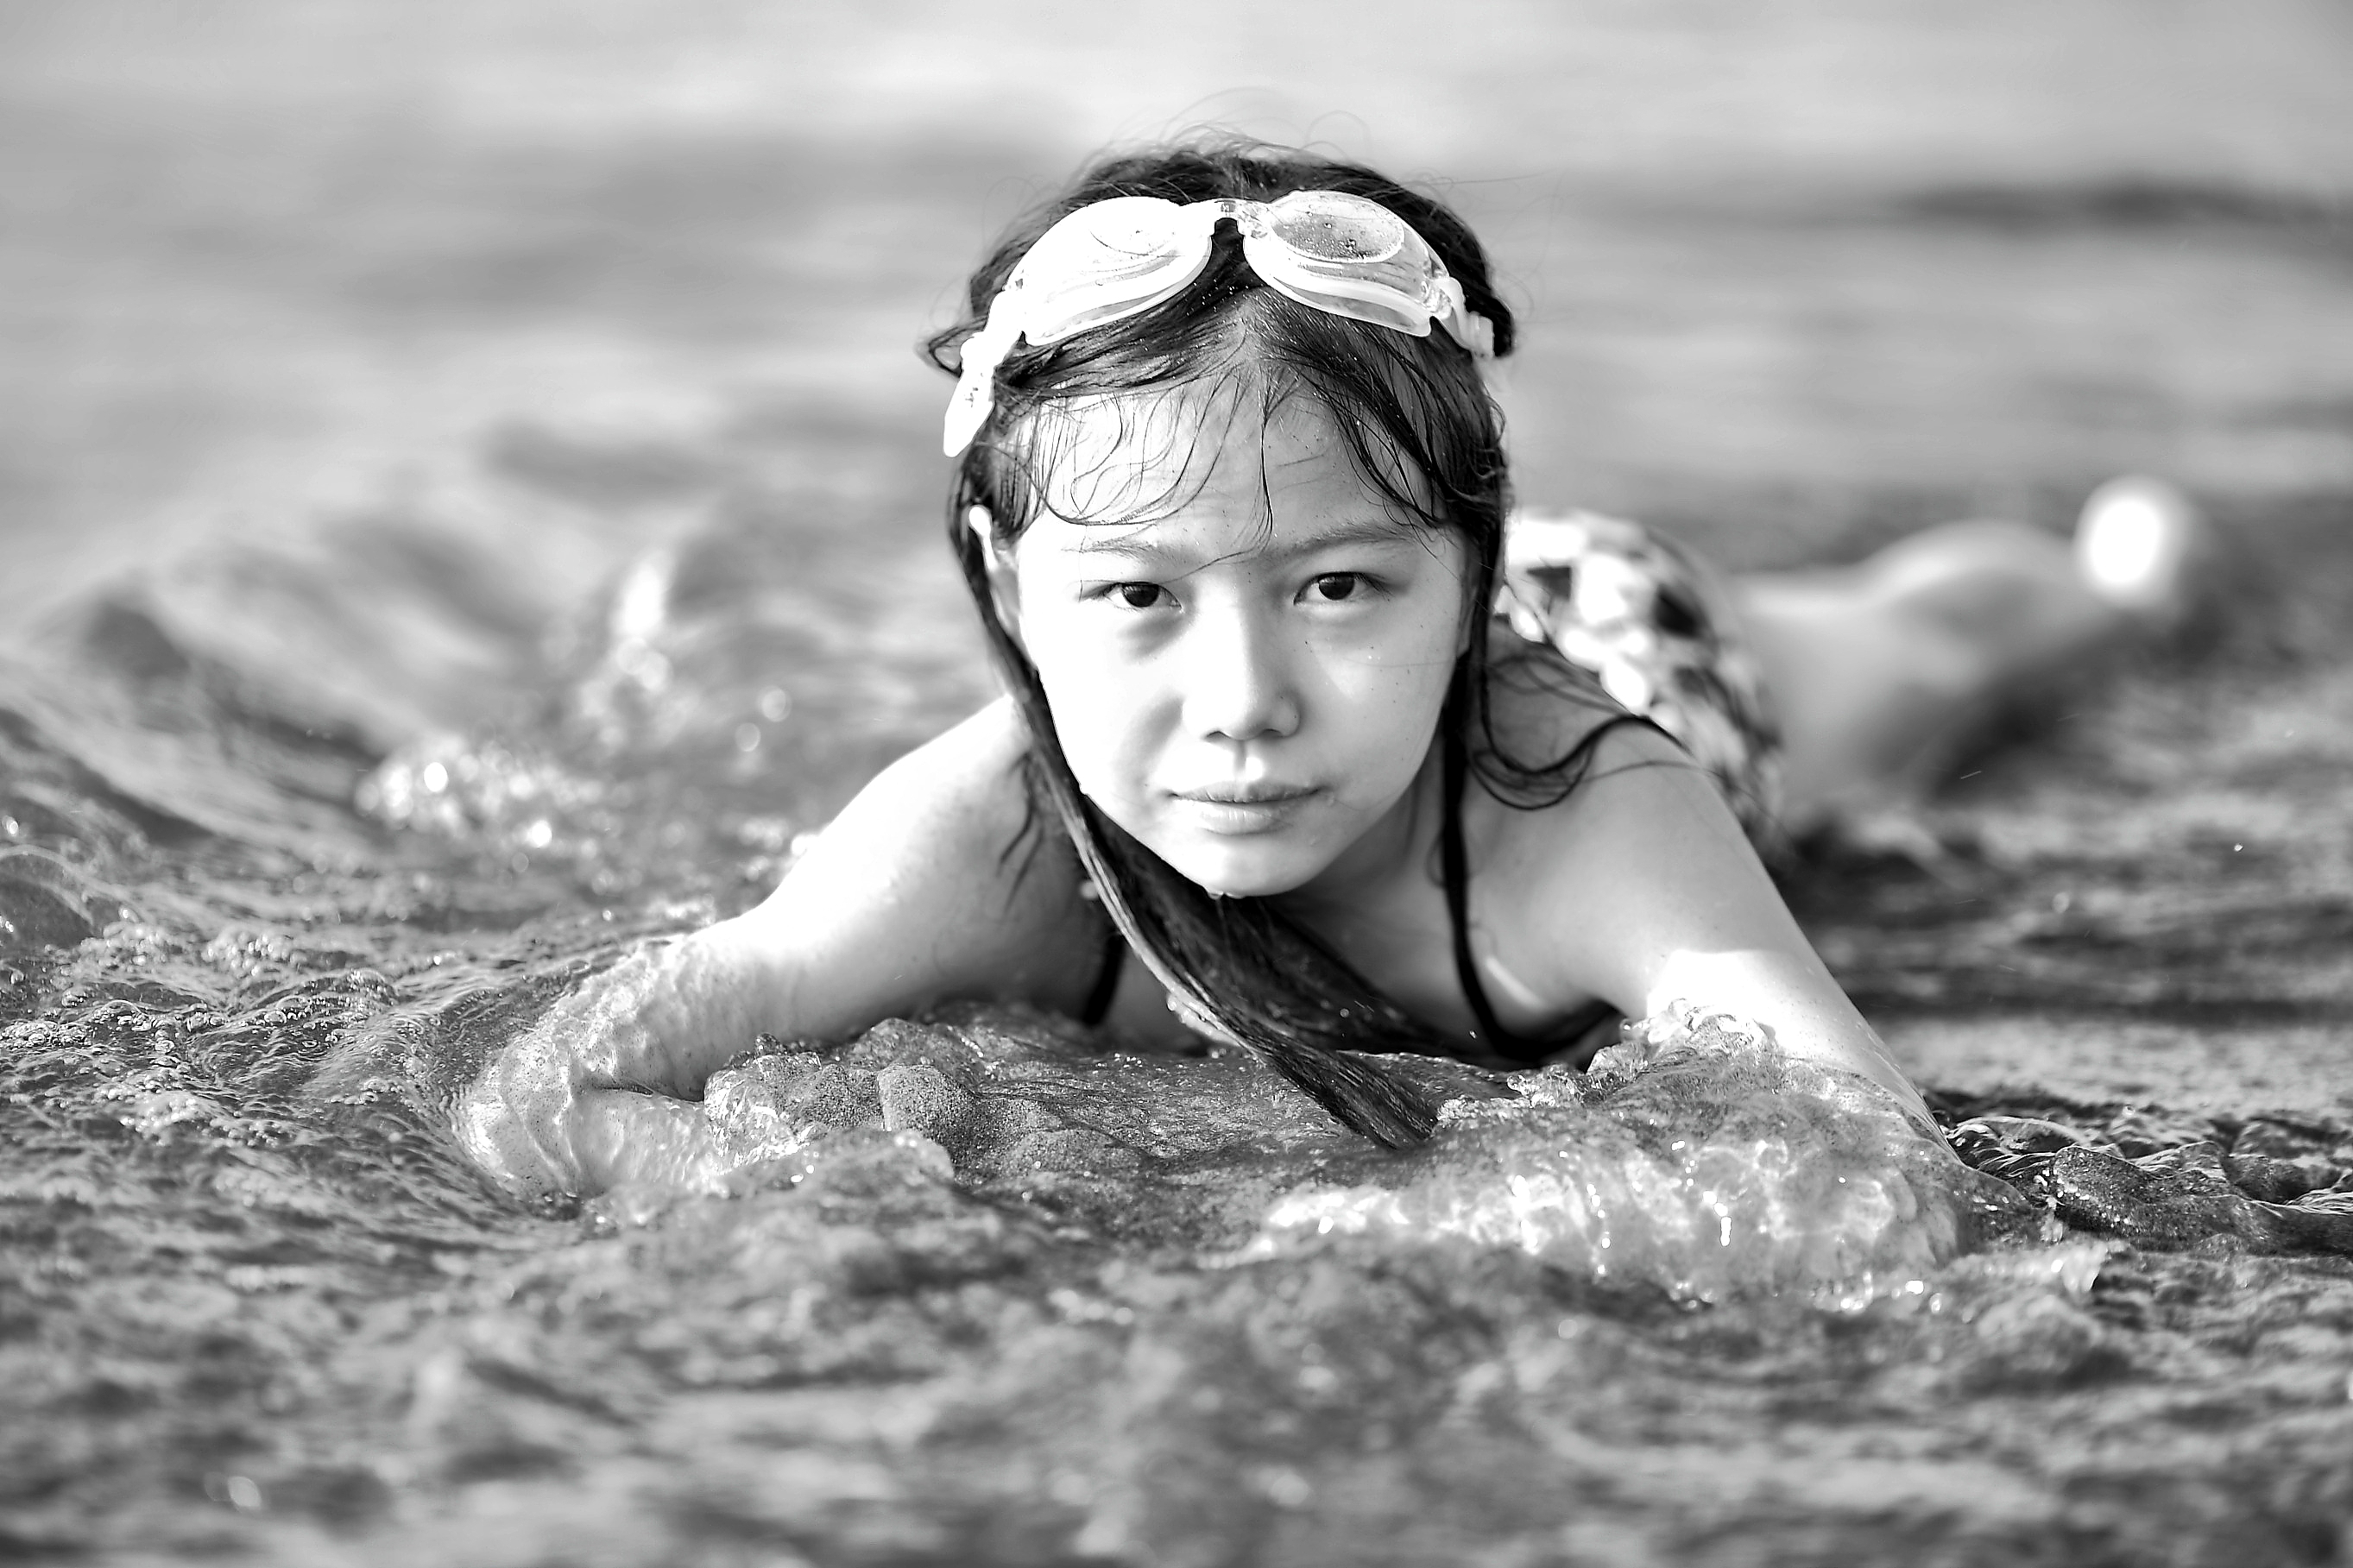 Youth in goggles lying in shallow water